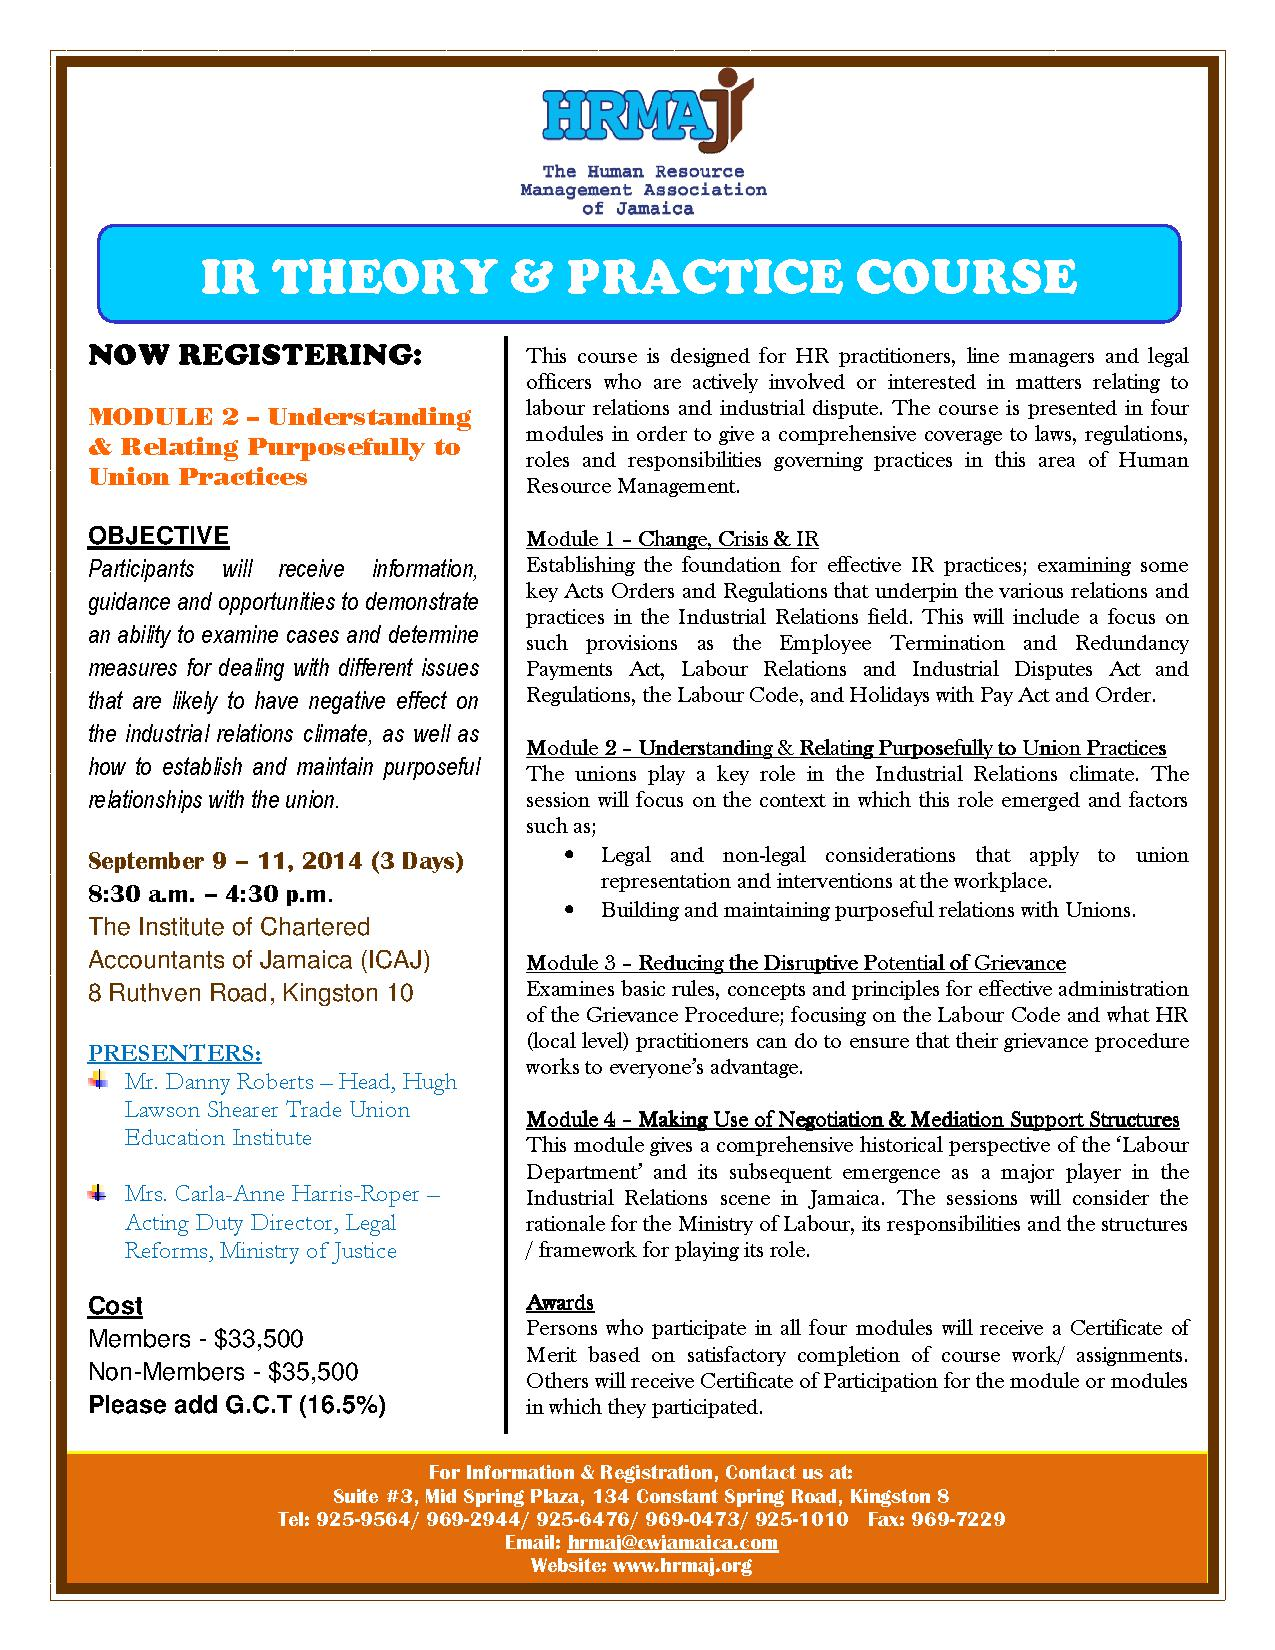 IR Theory Practice Course Flyer (Module 2)